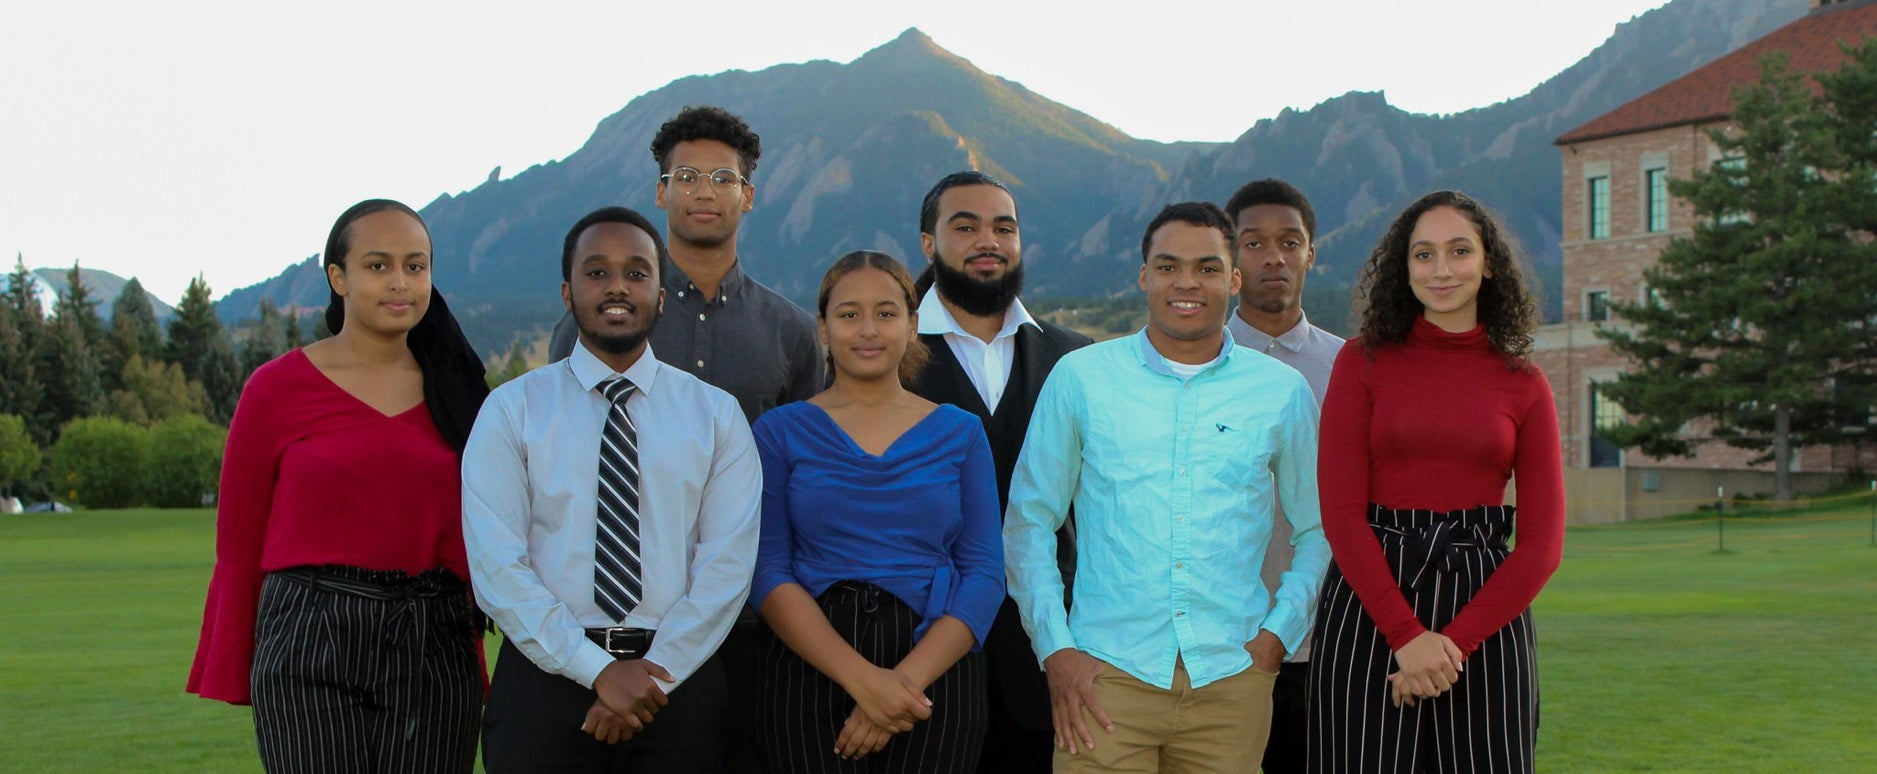 The executive leadership board of the CU Boulder NSBE chapter poses for a group photo on the business field.